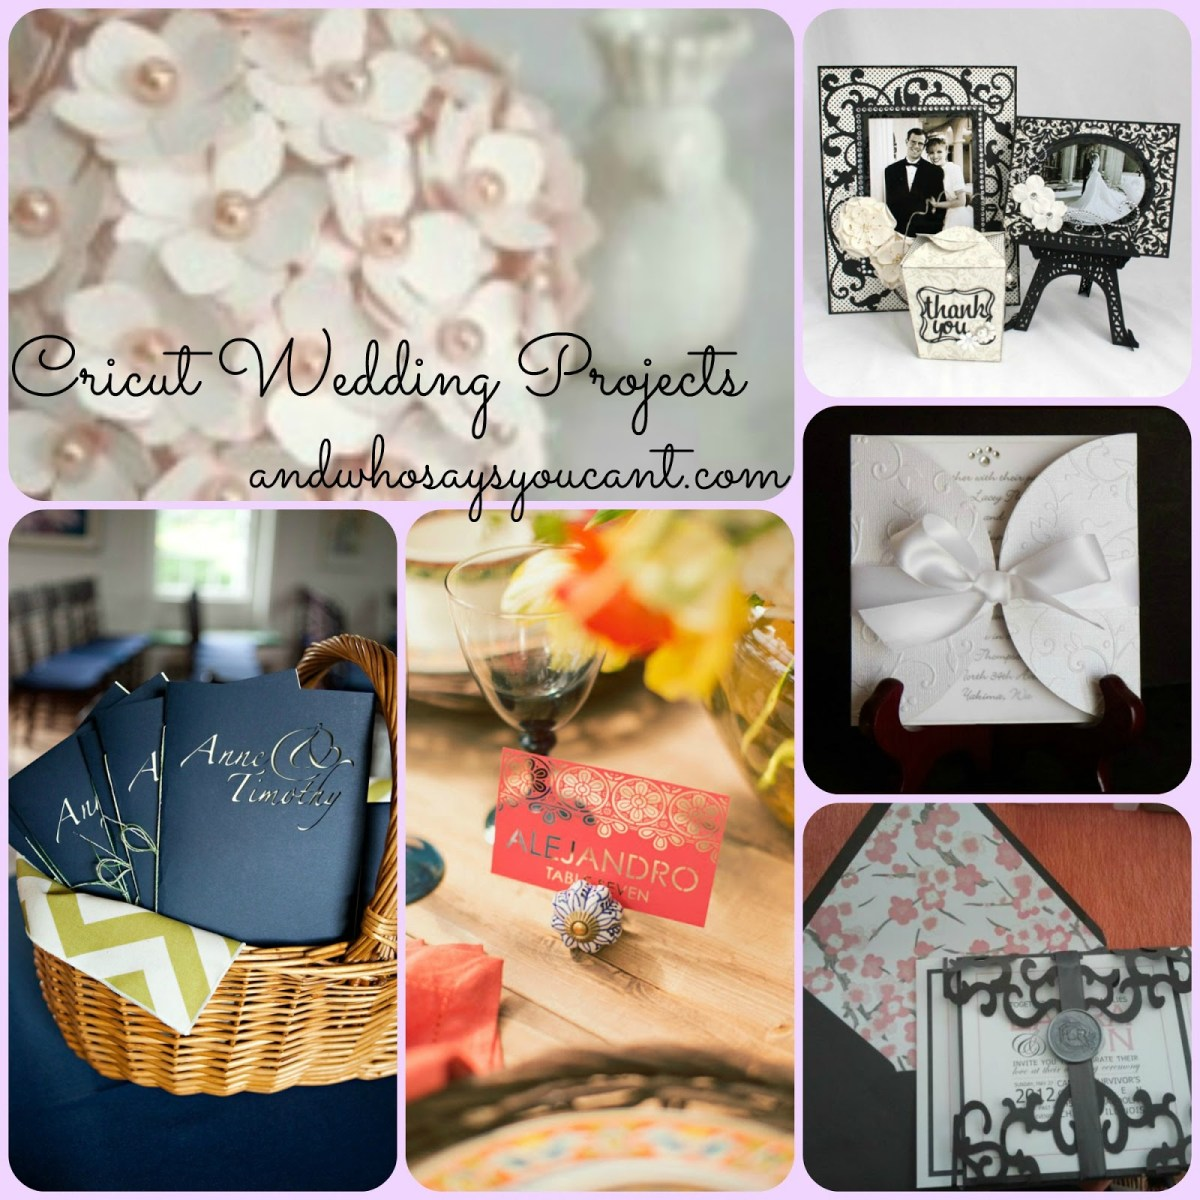 Cricut Wedding Projects And Who Says You Cant Diy Wedding Projects With Your Cricut